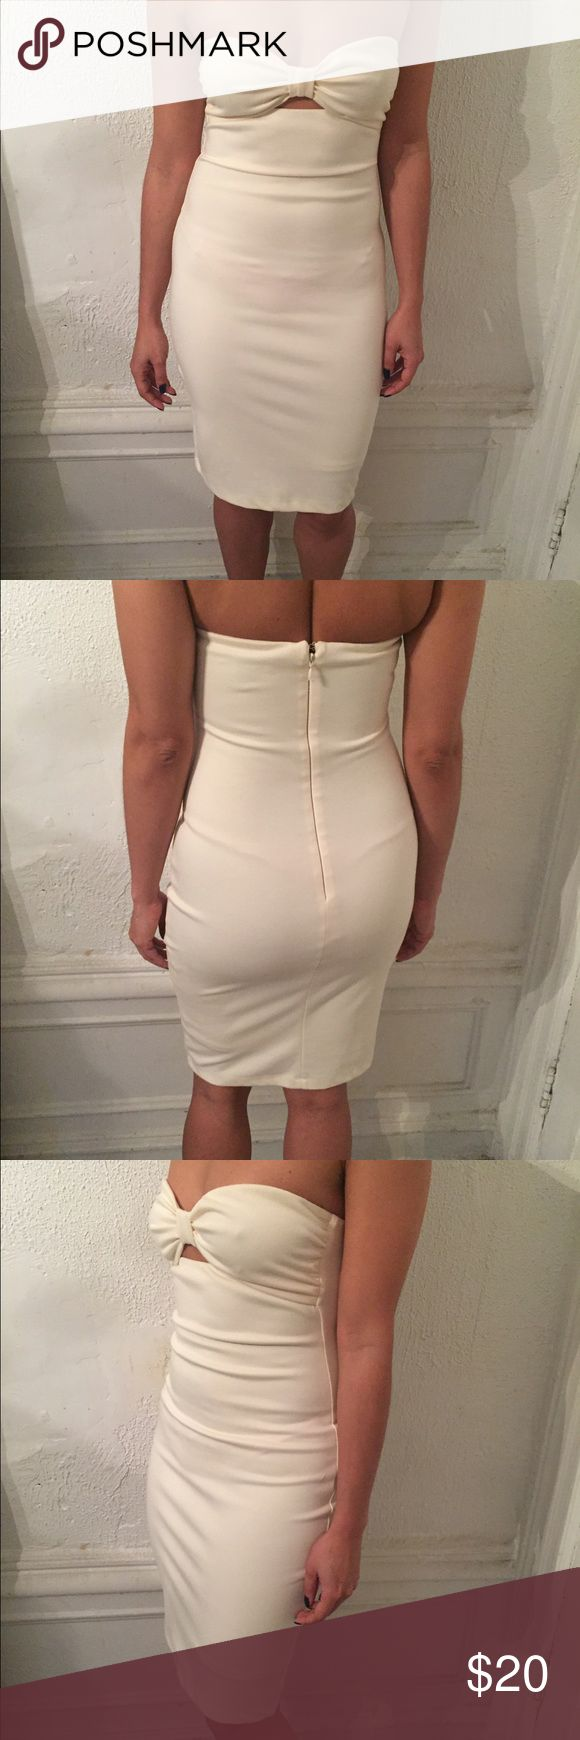 Cream bow detail dress Beige bodycon dress great for any party or function Dresses Mini